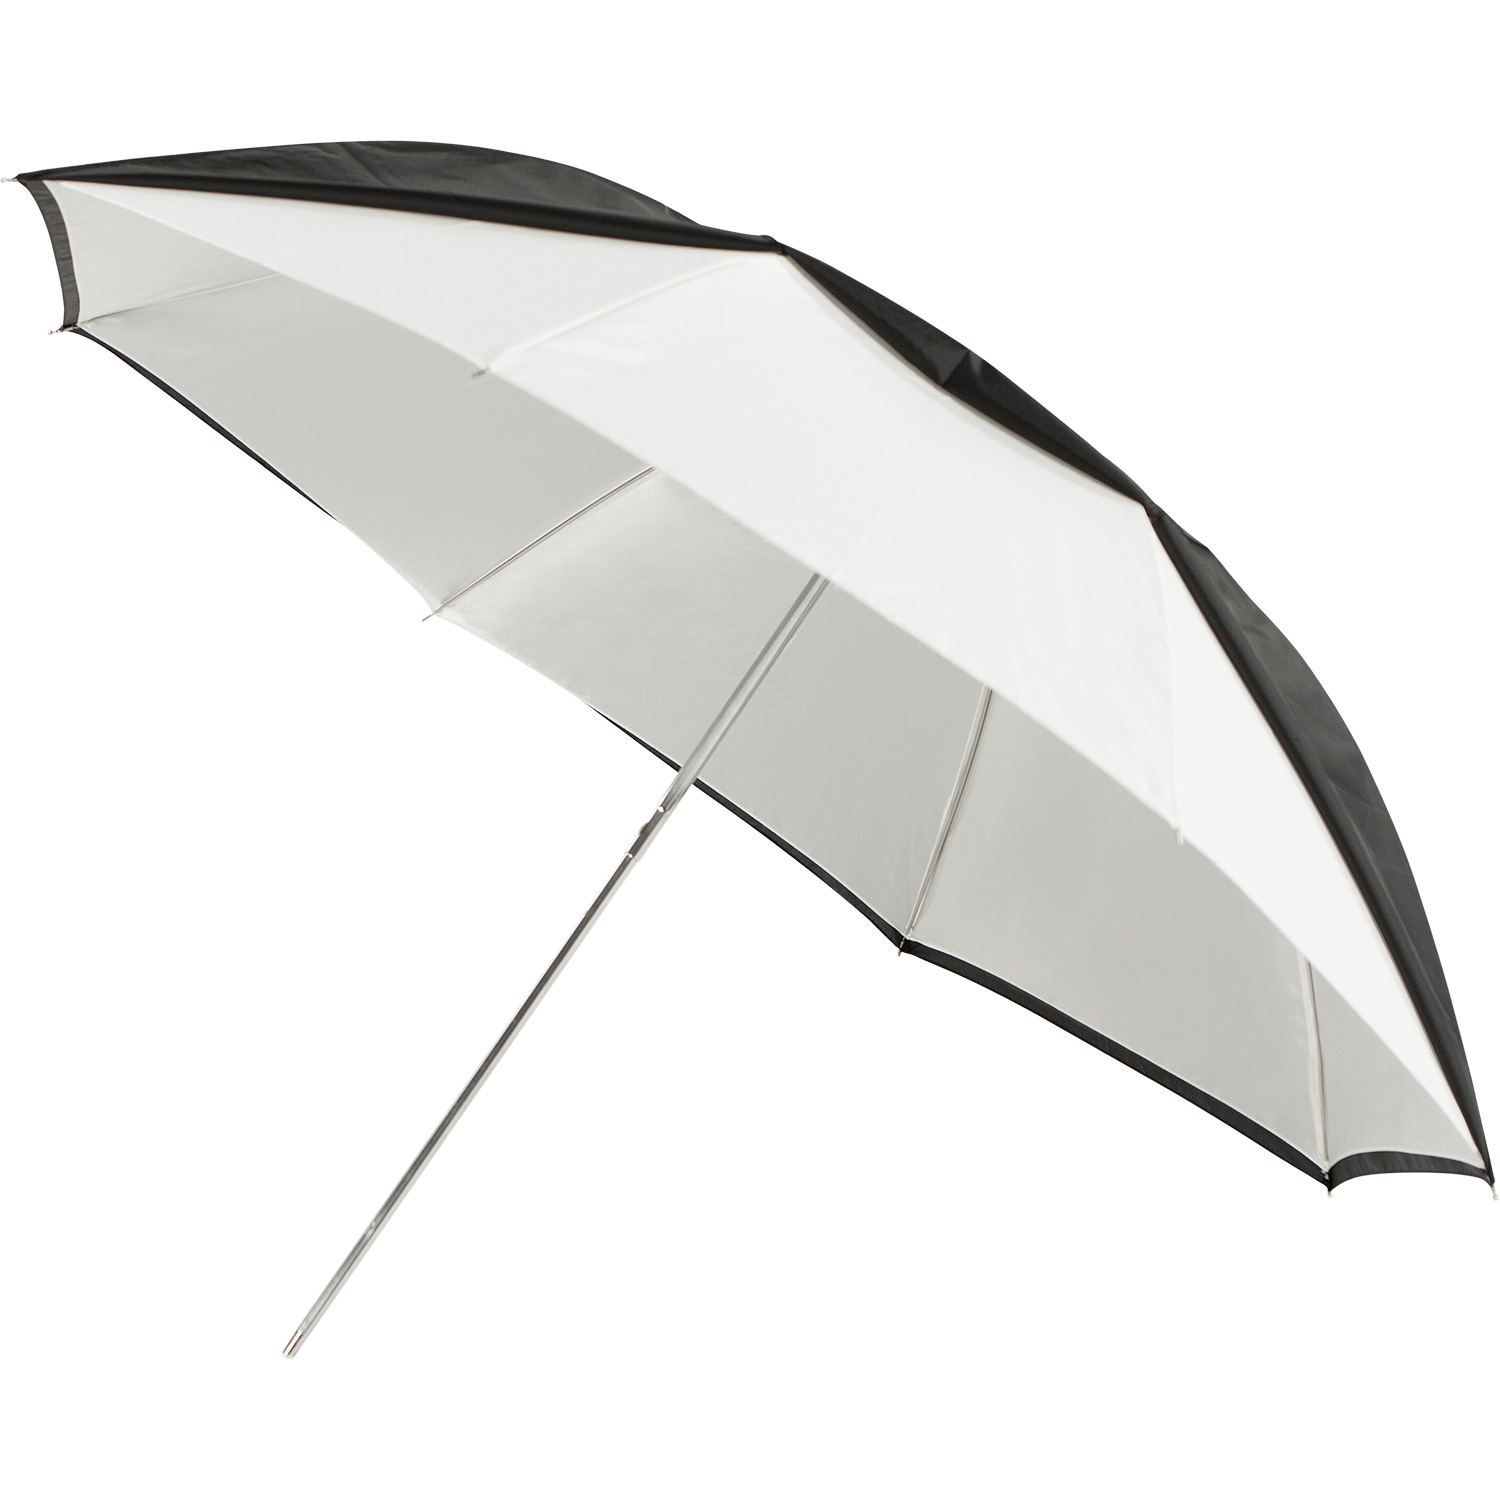 Convertible Compact Collapsible Umbrella - Optical White Satin with Removable Black Cover (43-in.)